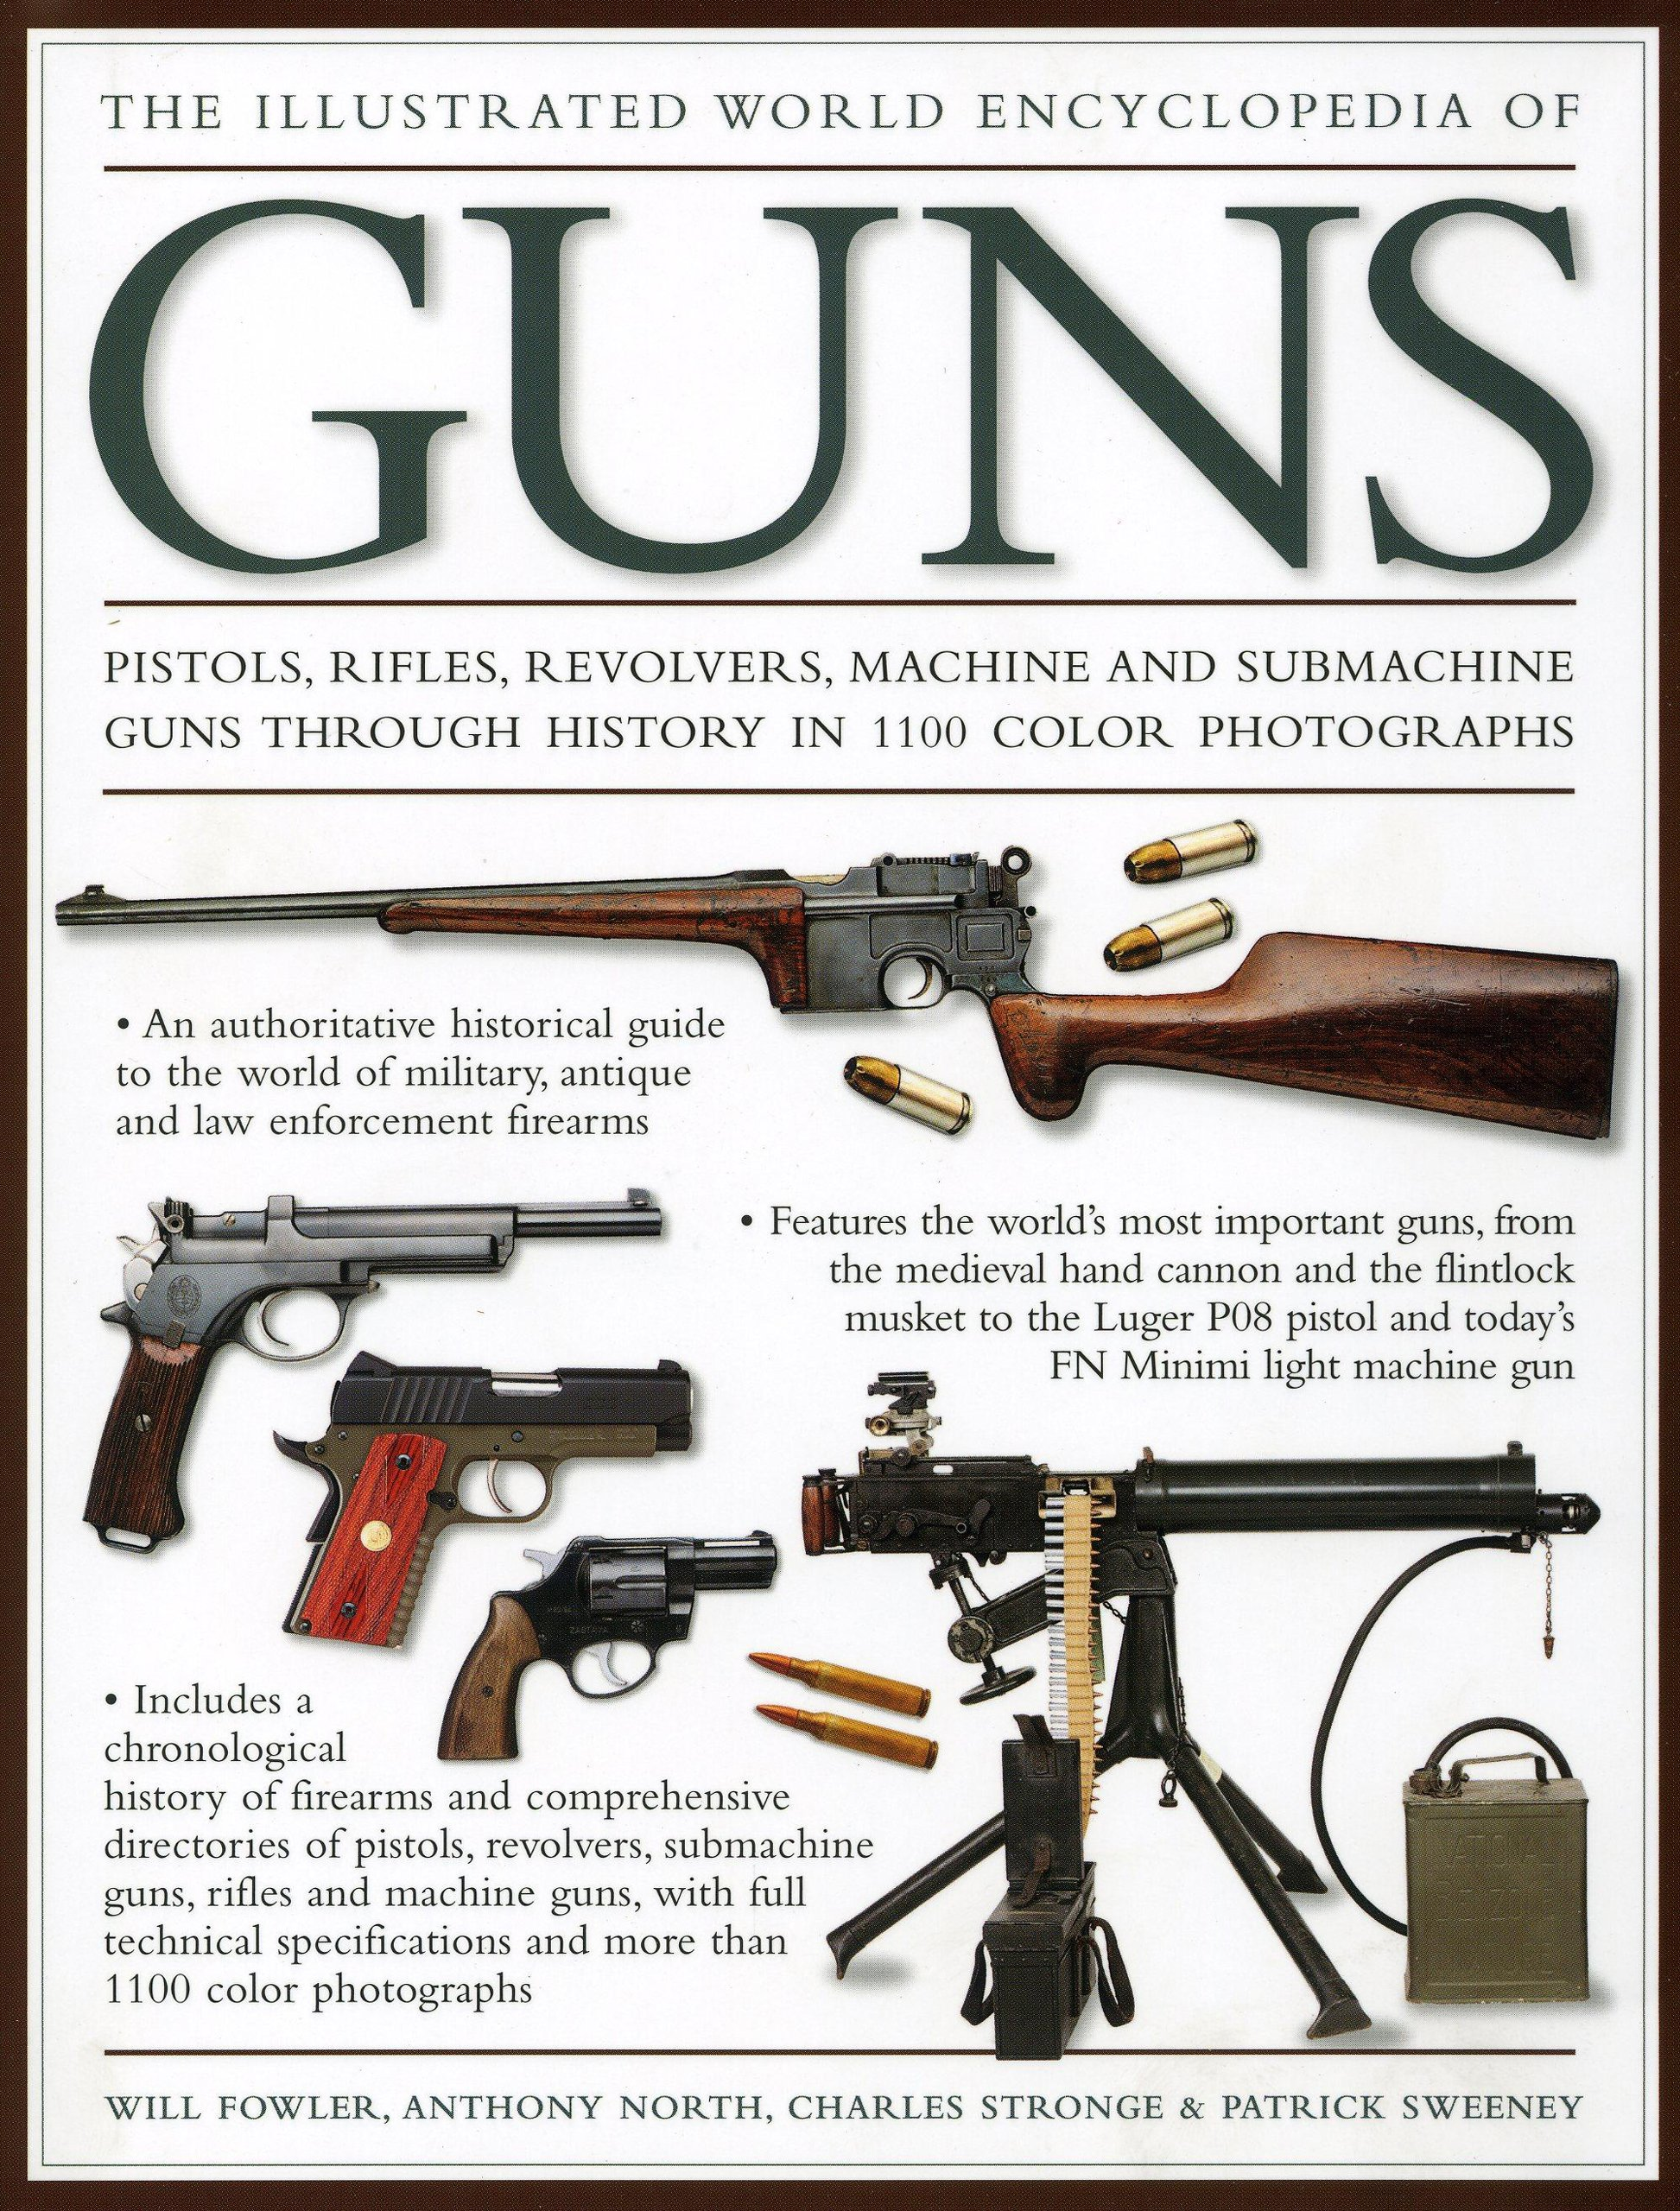 An Illustrated Historical Reference To Over 500 Military Law Enforcement And Antique Firearms From Around The World The World Encyclopedia of Pistols Revolvers /& Submachine Guns